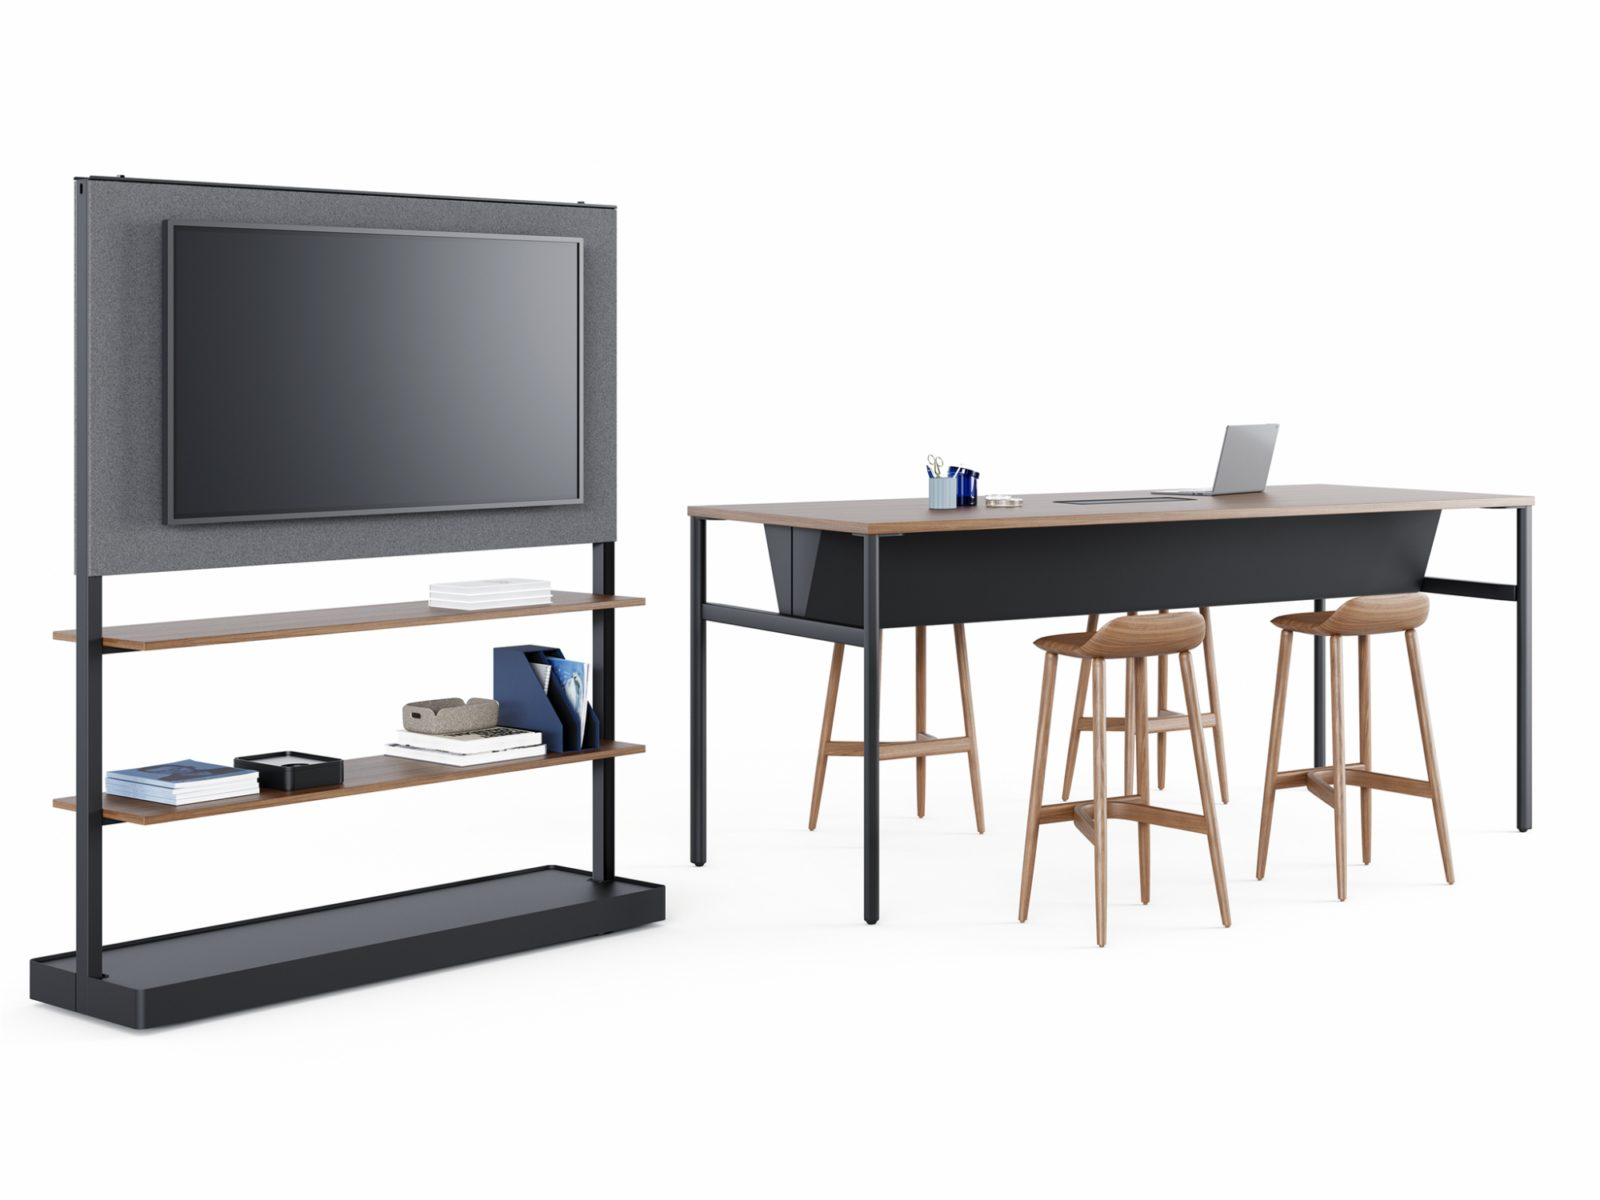 An Agile Wall with a monitor mounted on a dark grey fabric tile with two storage shelves holding office supplies below it next to a navy Communal Table.